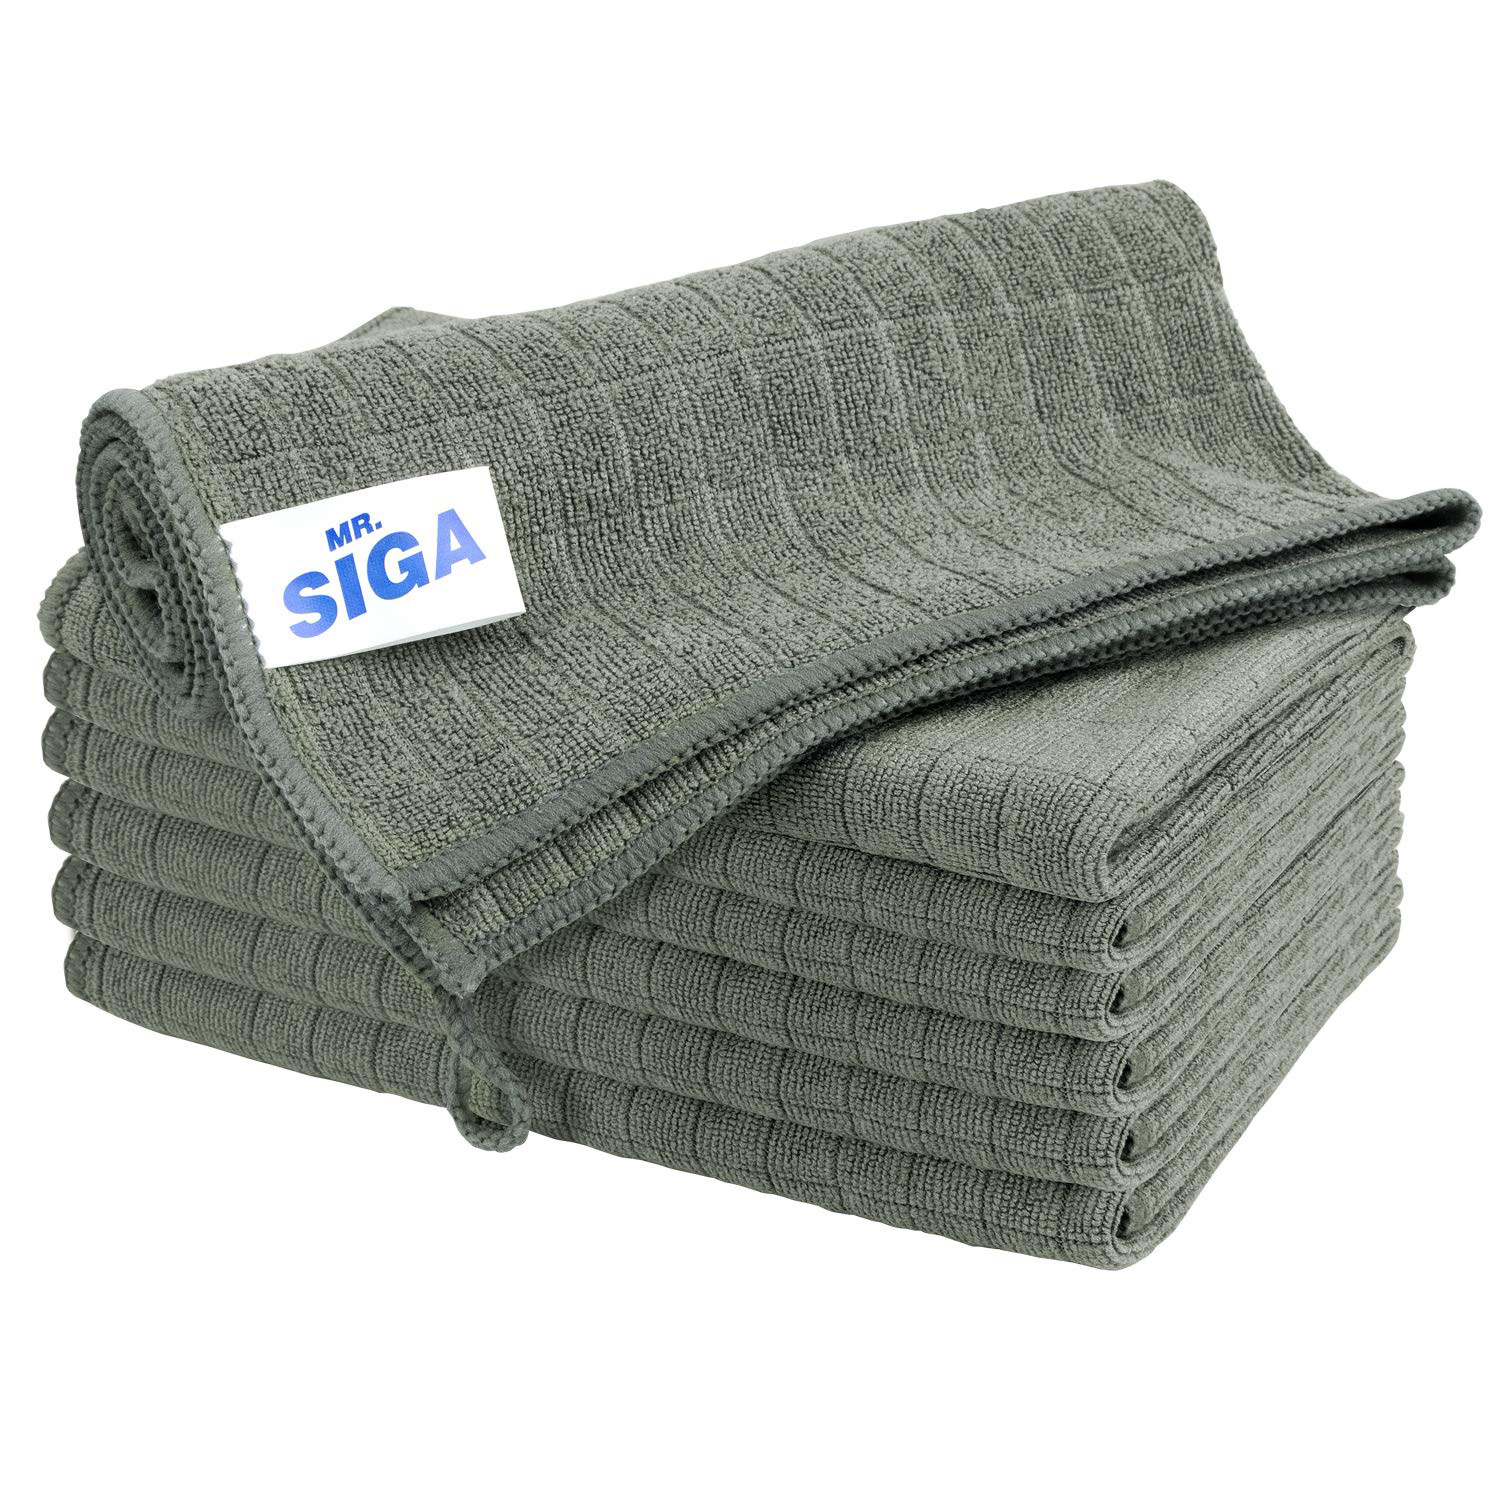 MR.SIGA Microfiber Cleaning Cloth